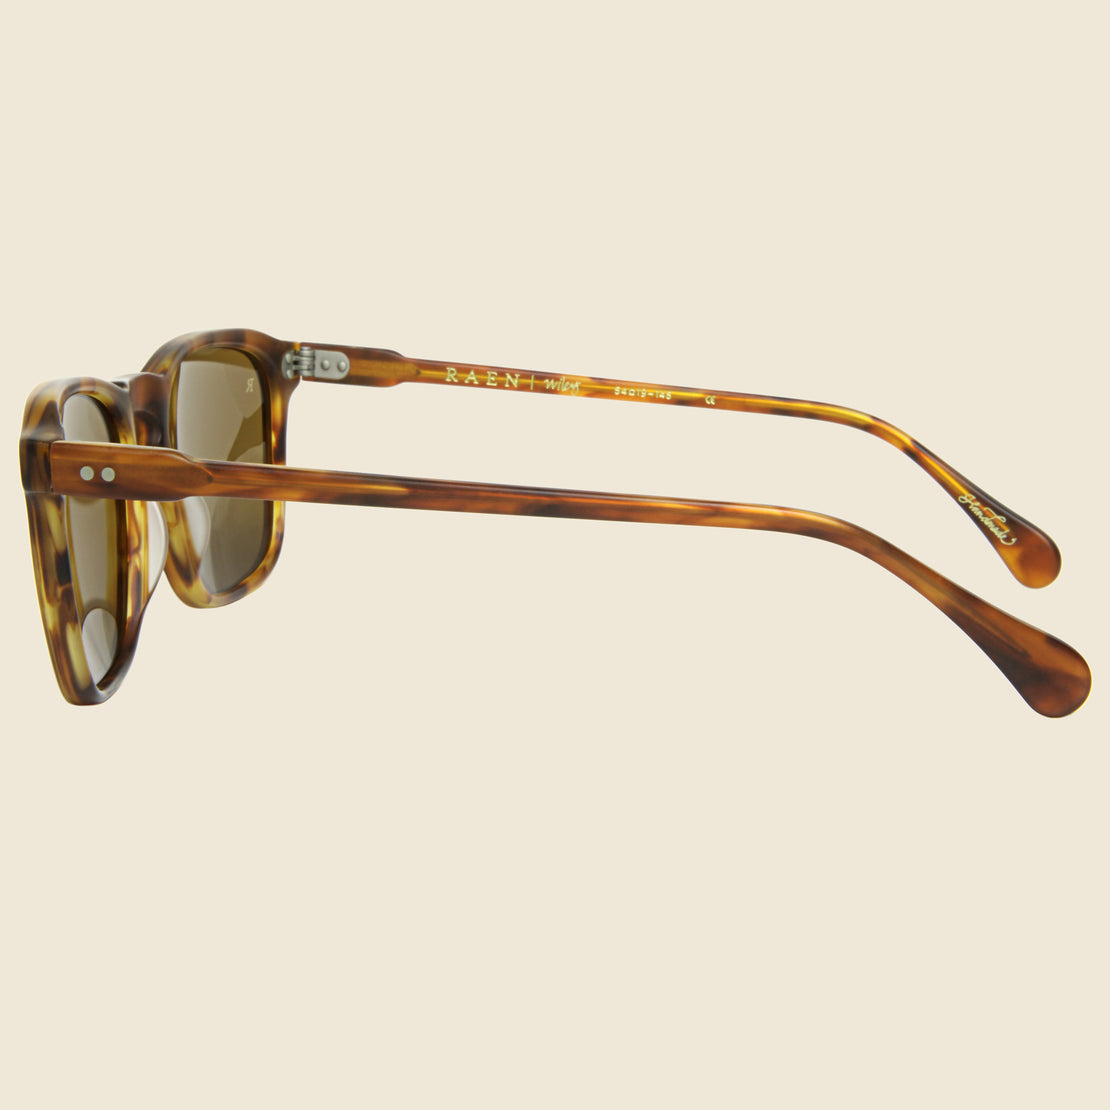 Wiley - Matte Rootbeer - Raen Optics - STAG Provisions - Accessories - Eyewear